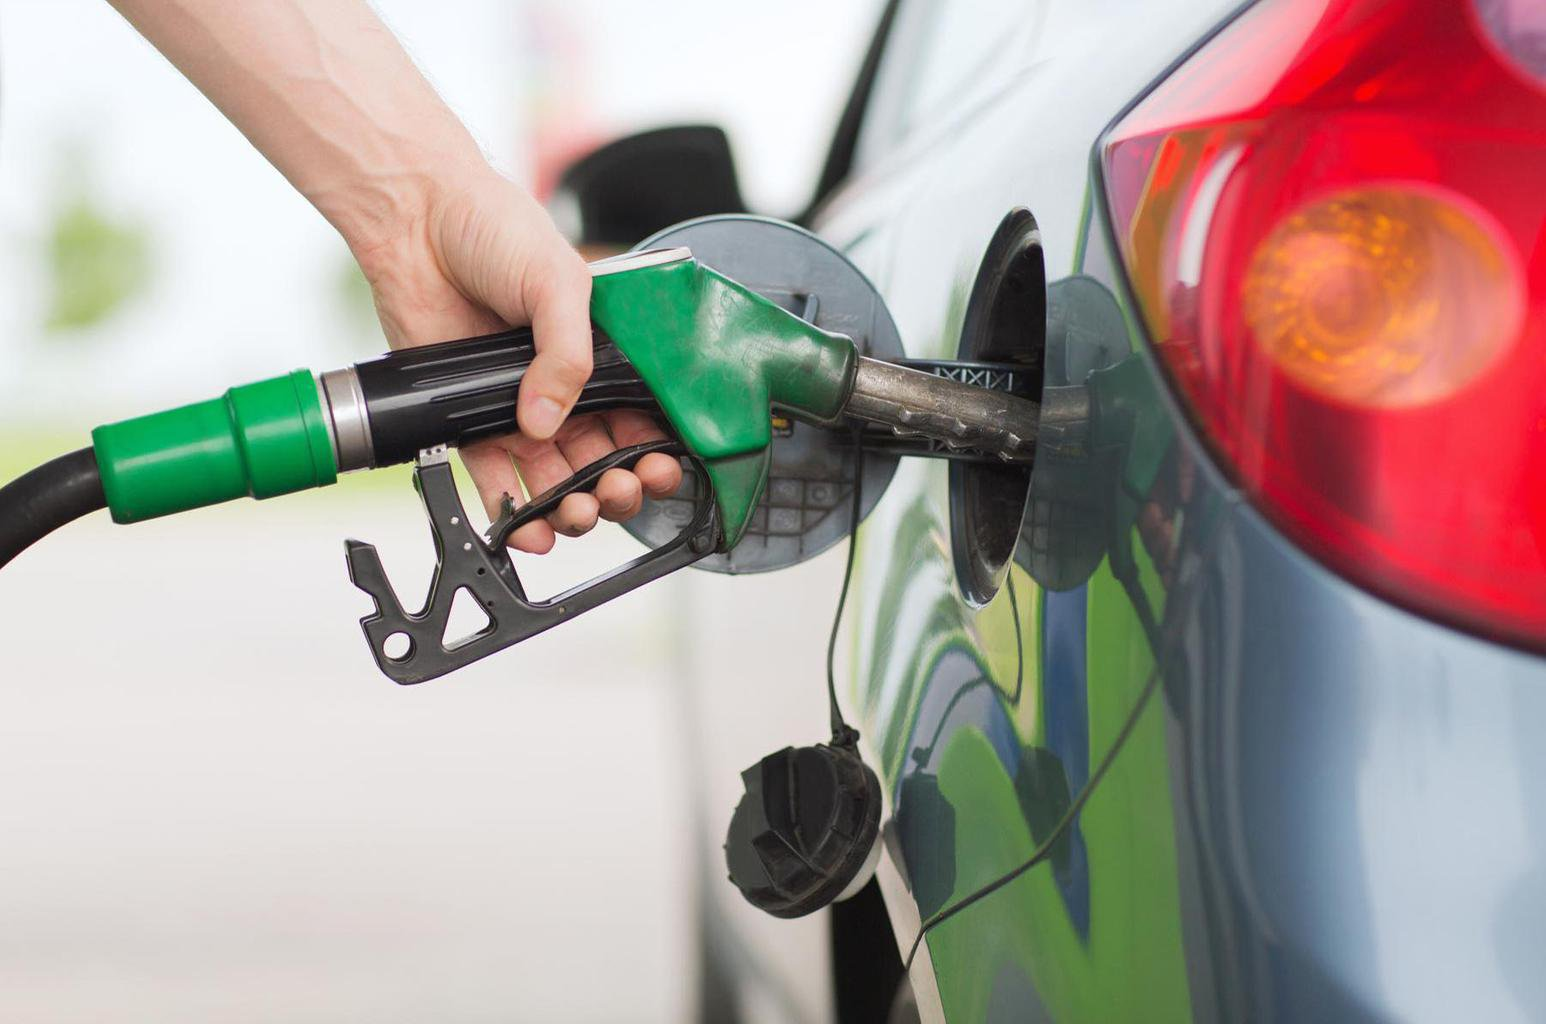 Petrol or diesel: which will cost you less?